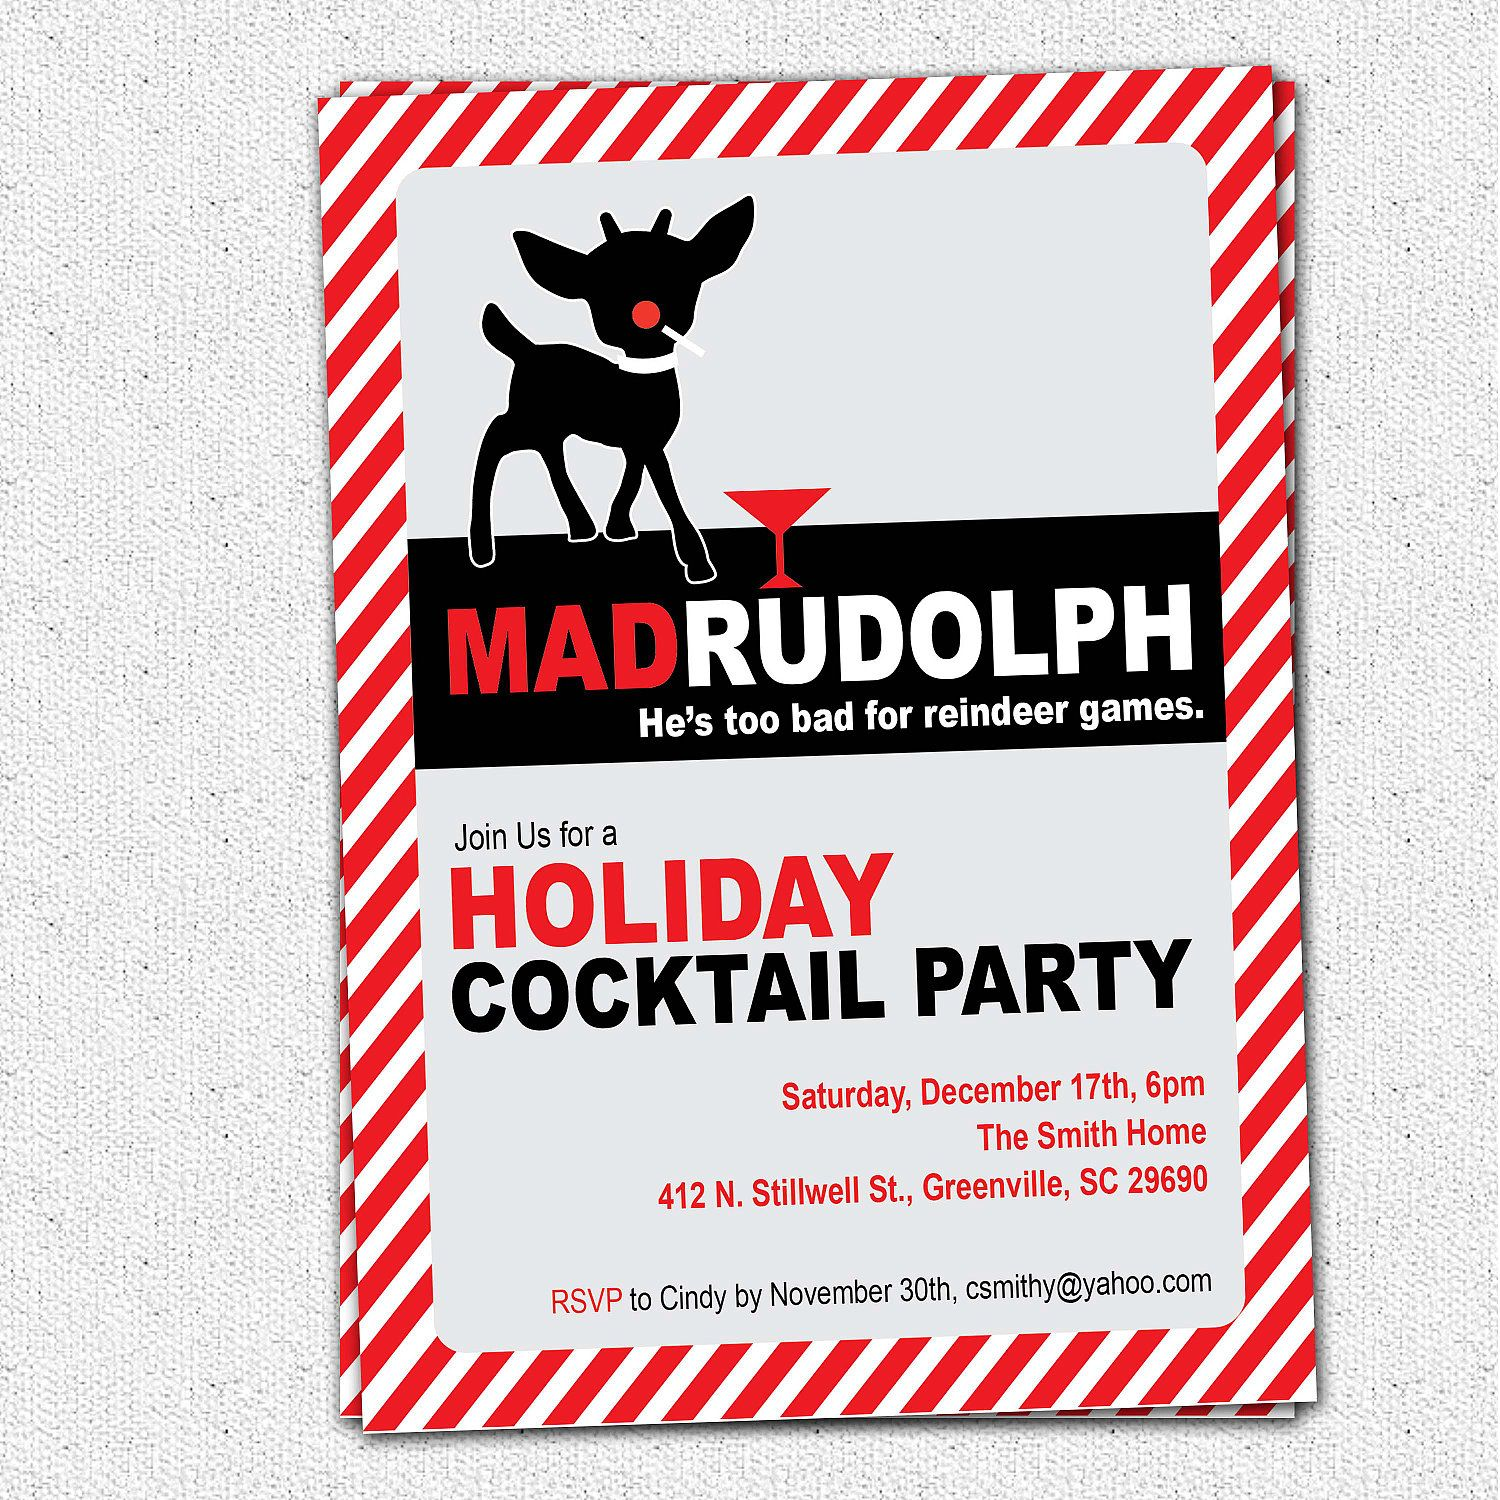 Mad Rudolph | Events | Pinterest | Holiday party invitations ...